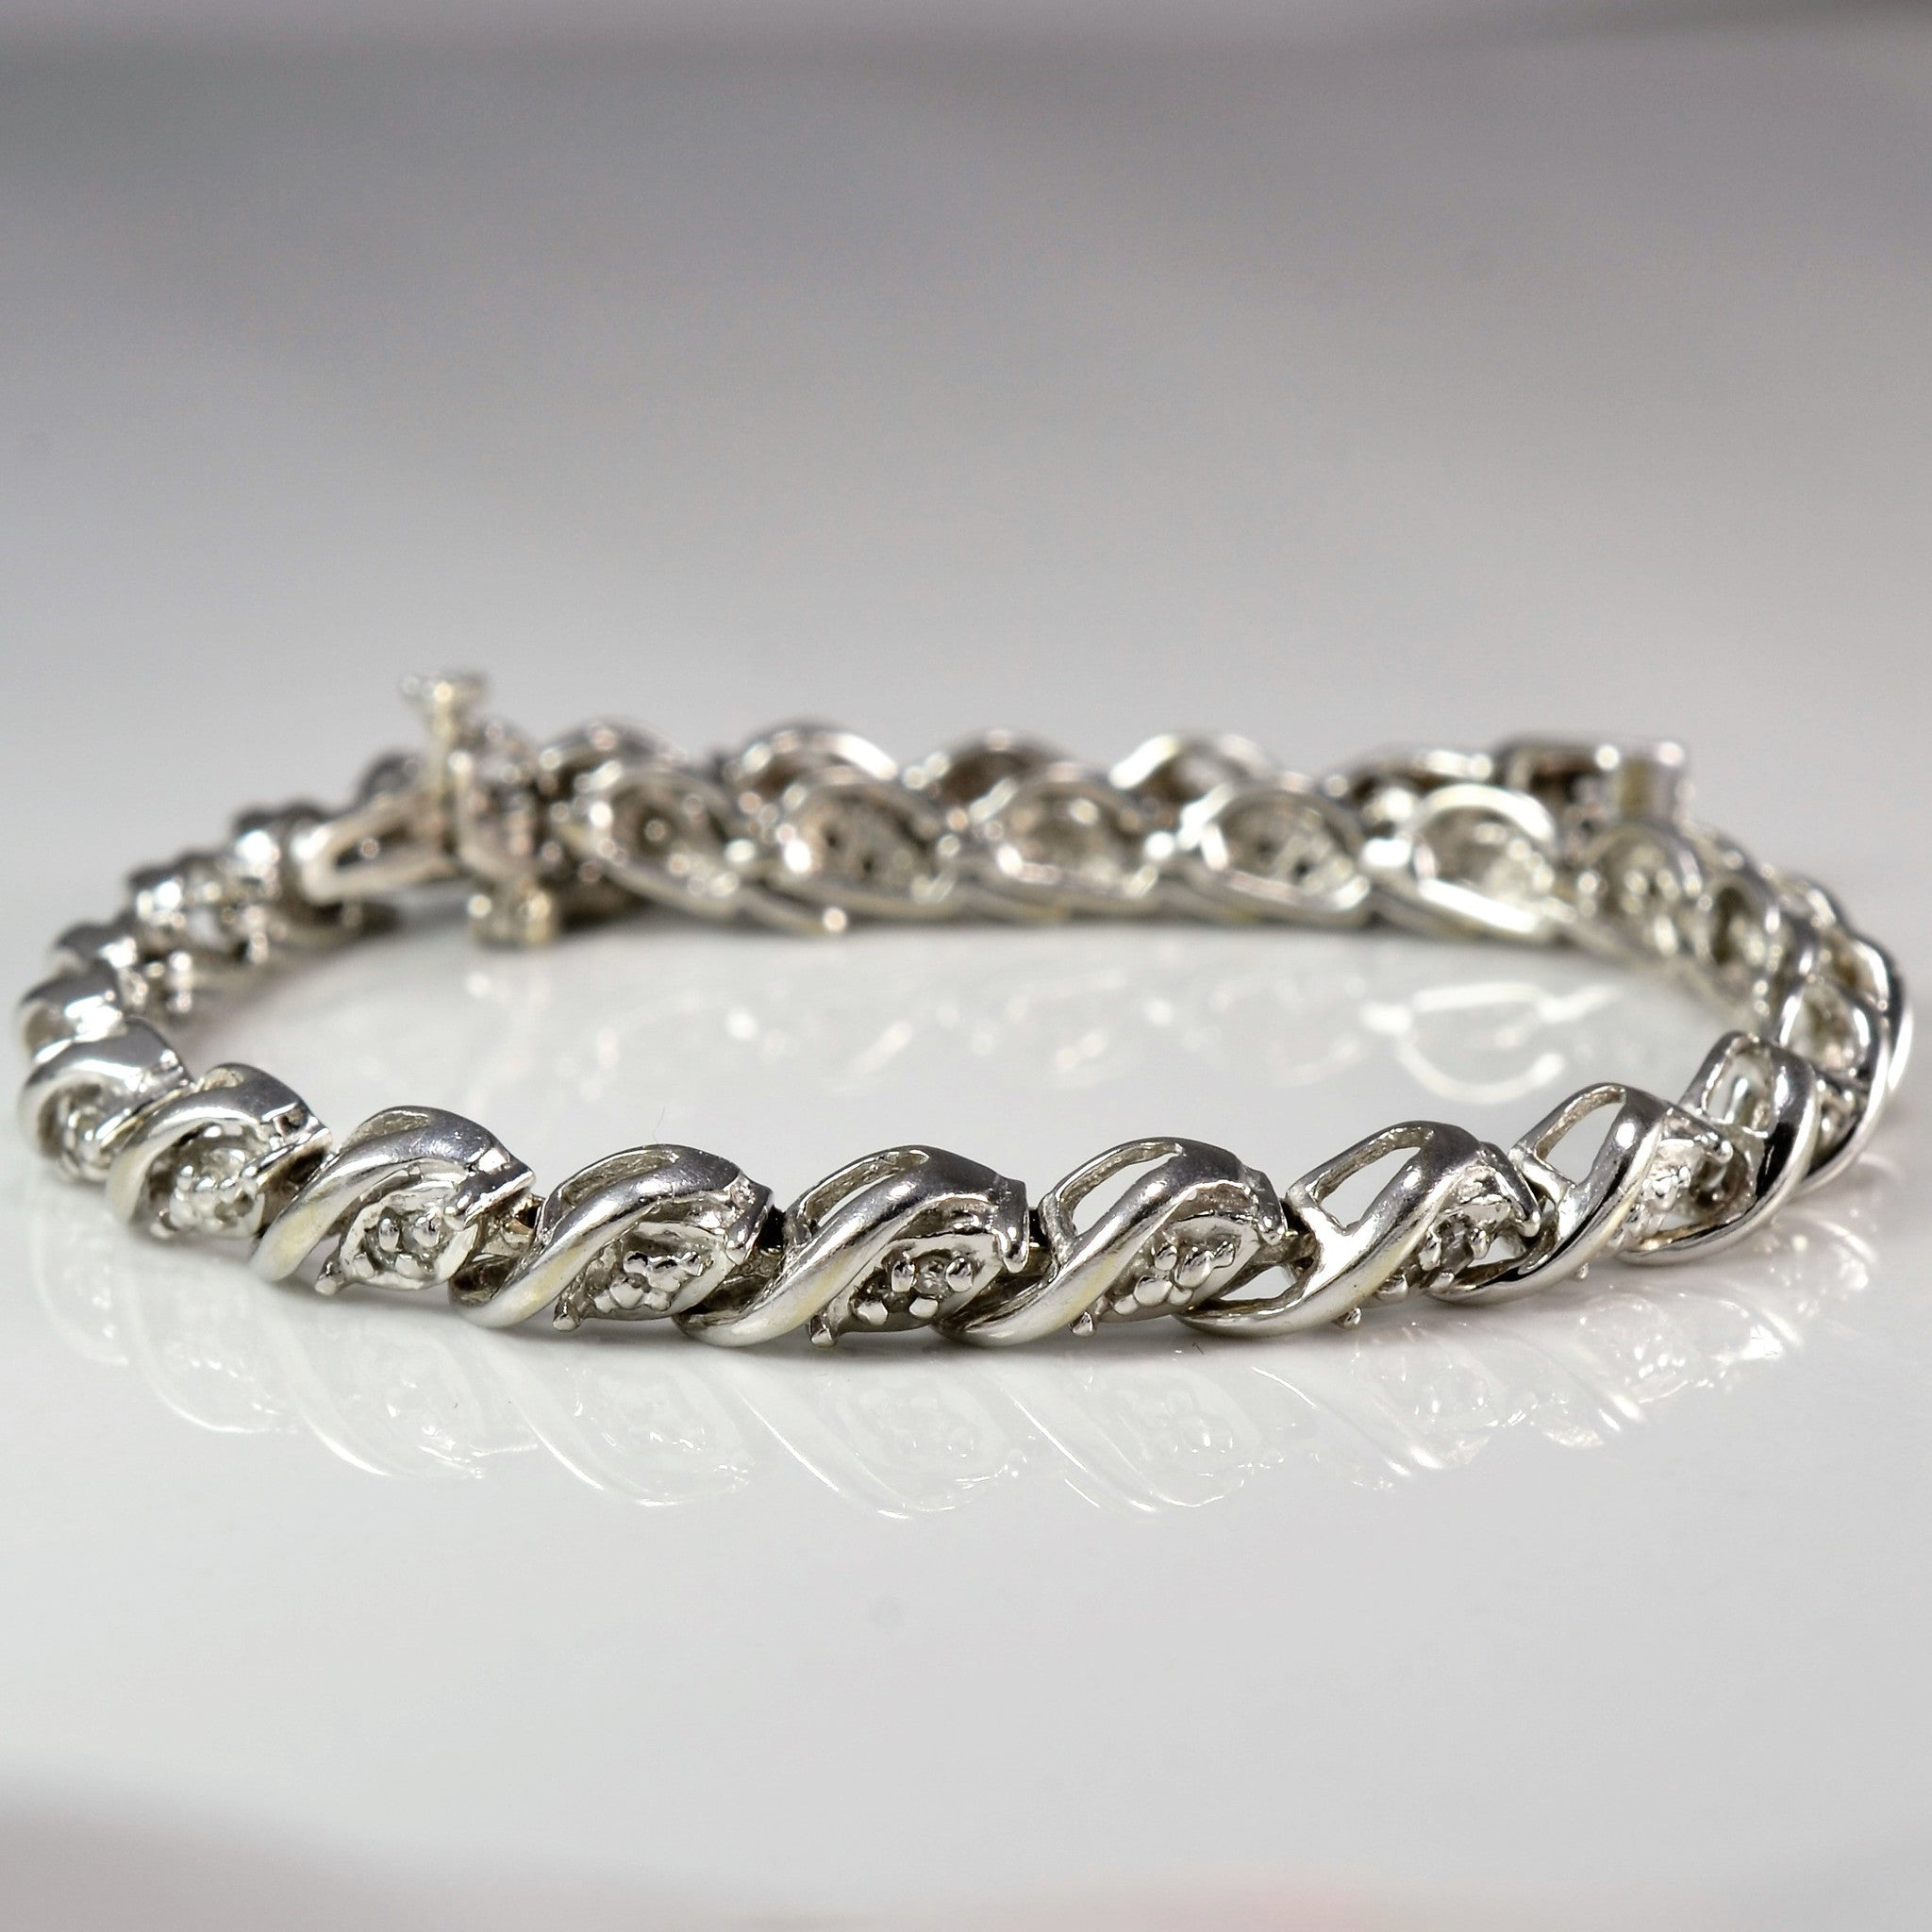 Diamond Wave Tennis Bracelet | 0.20 ctw, 7.5"